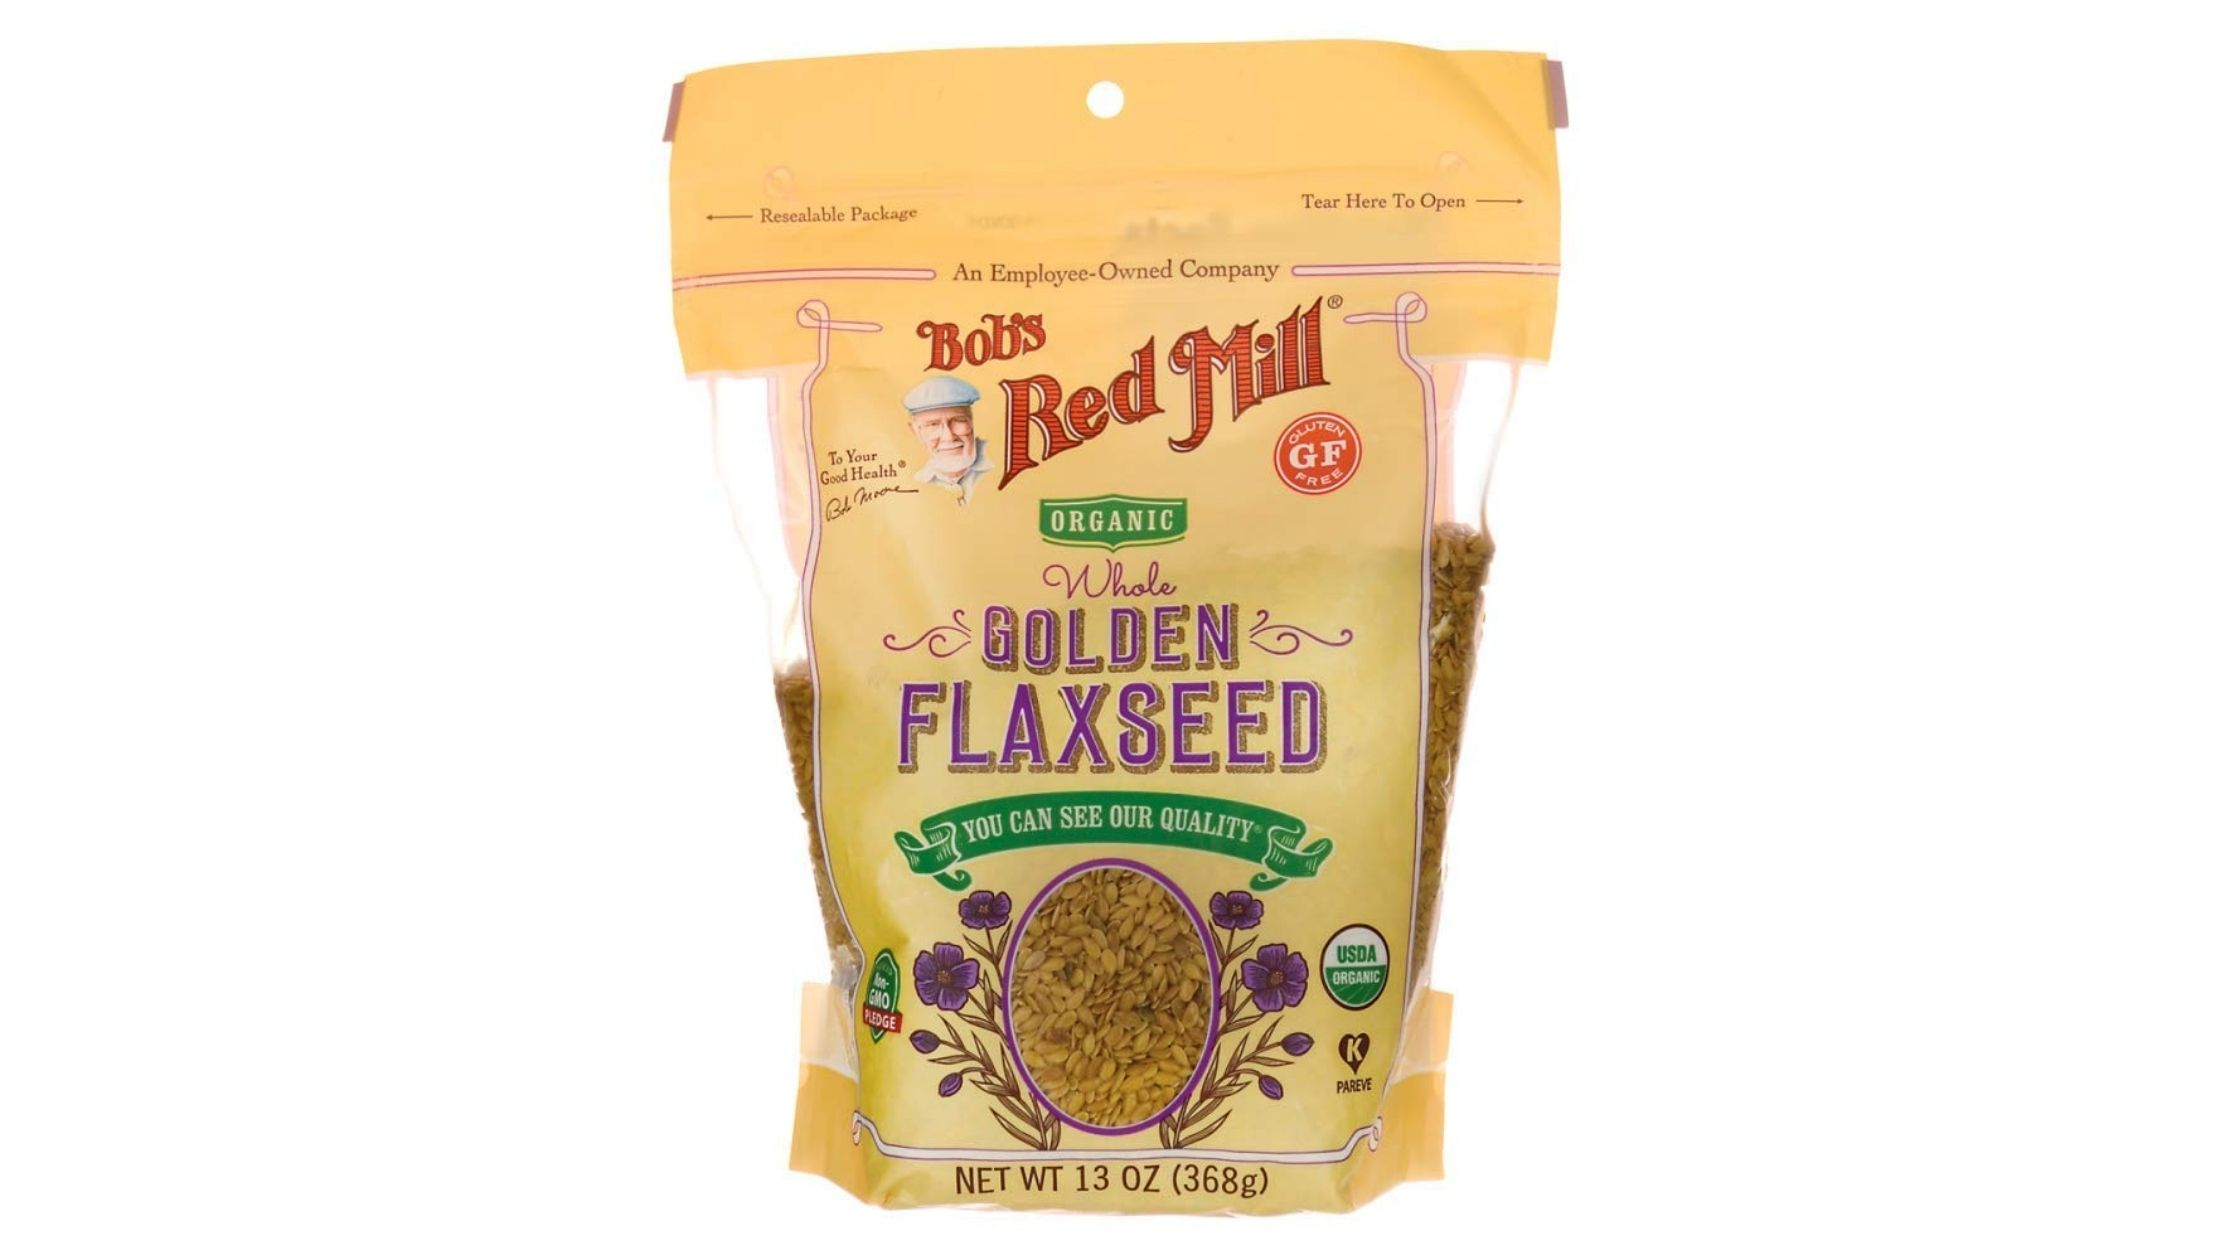 Raw Whole Golden Flax Seeds by Bob's Red Mill